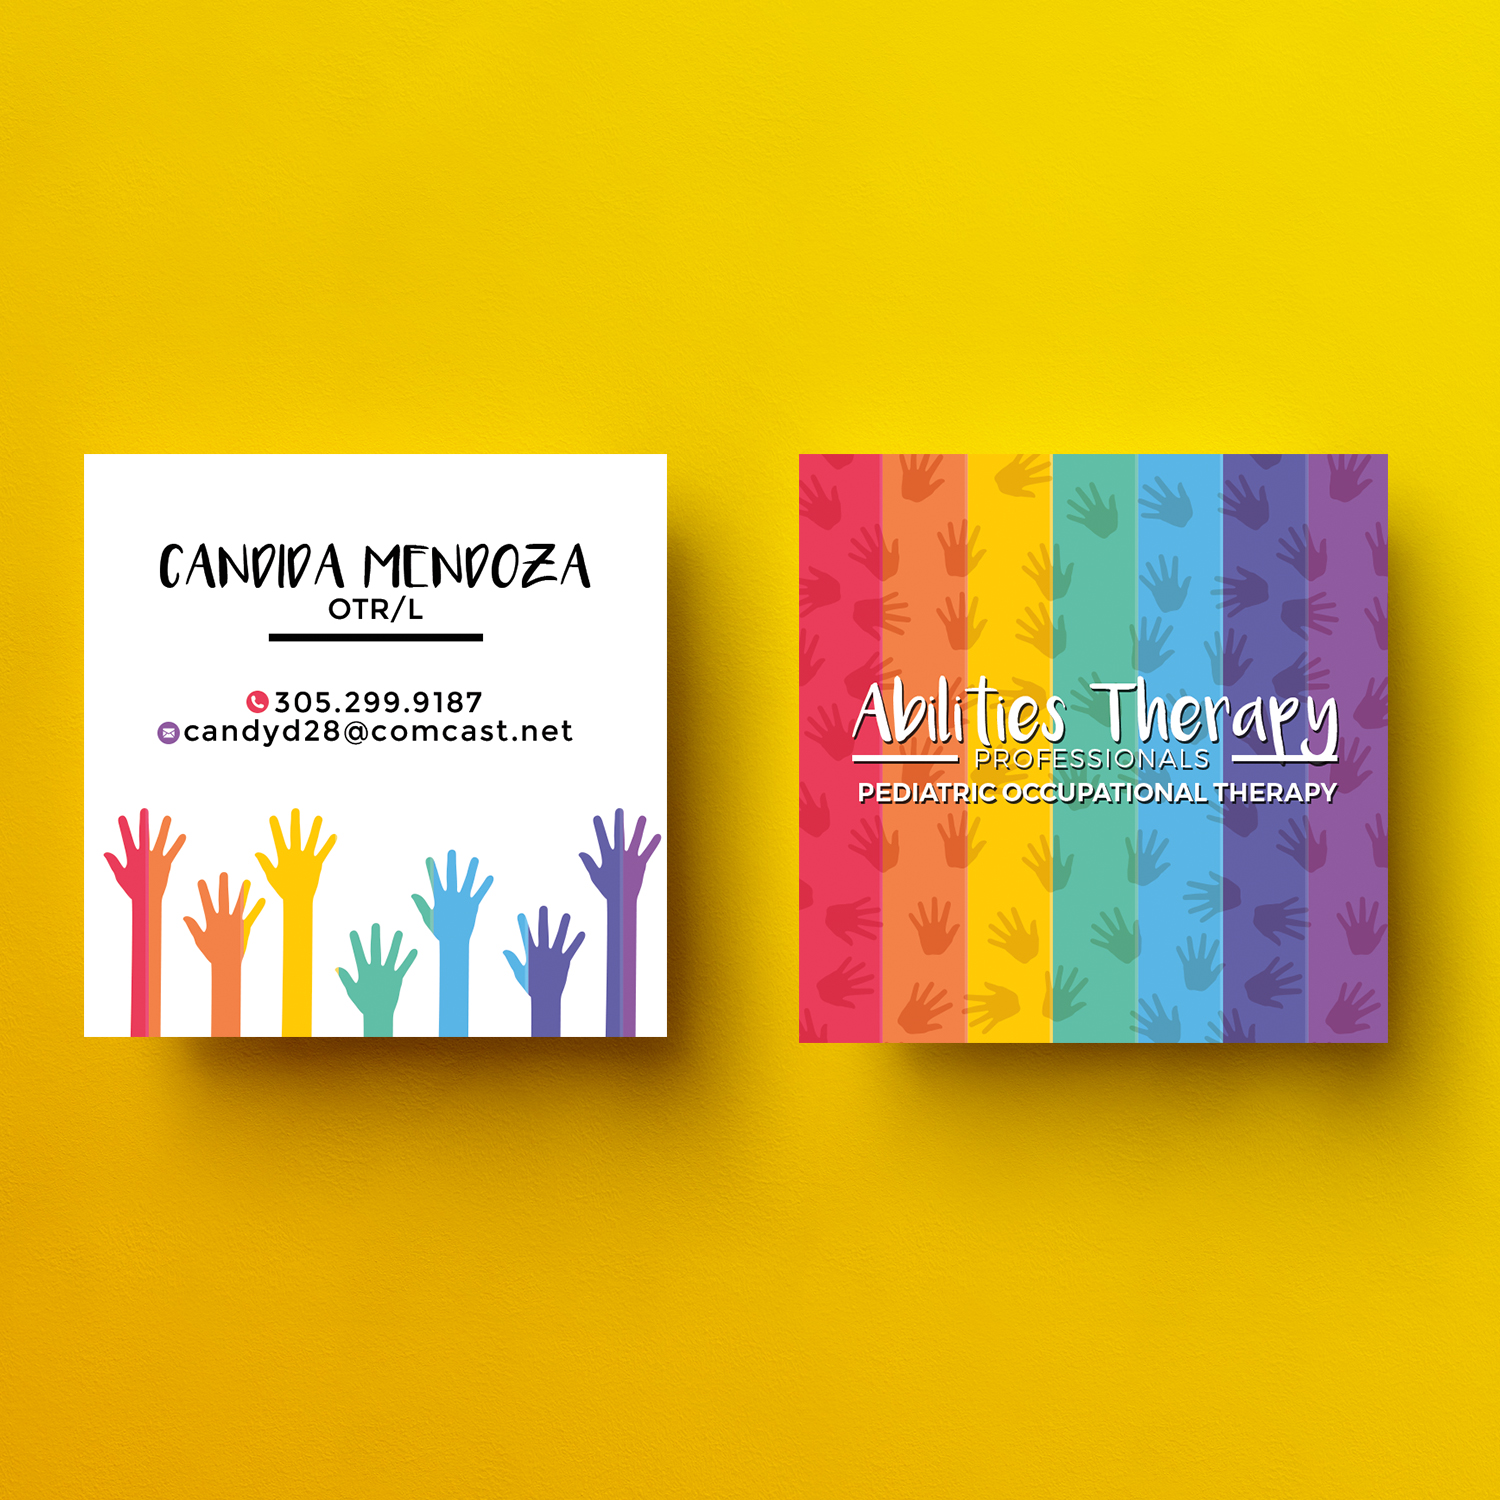 therapist business cards - Etame.mibawa.co